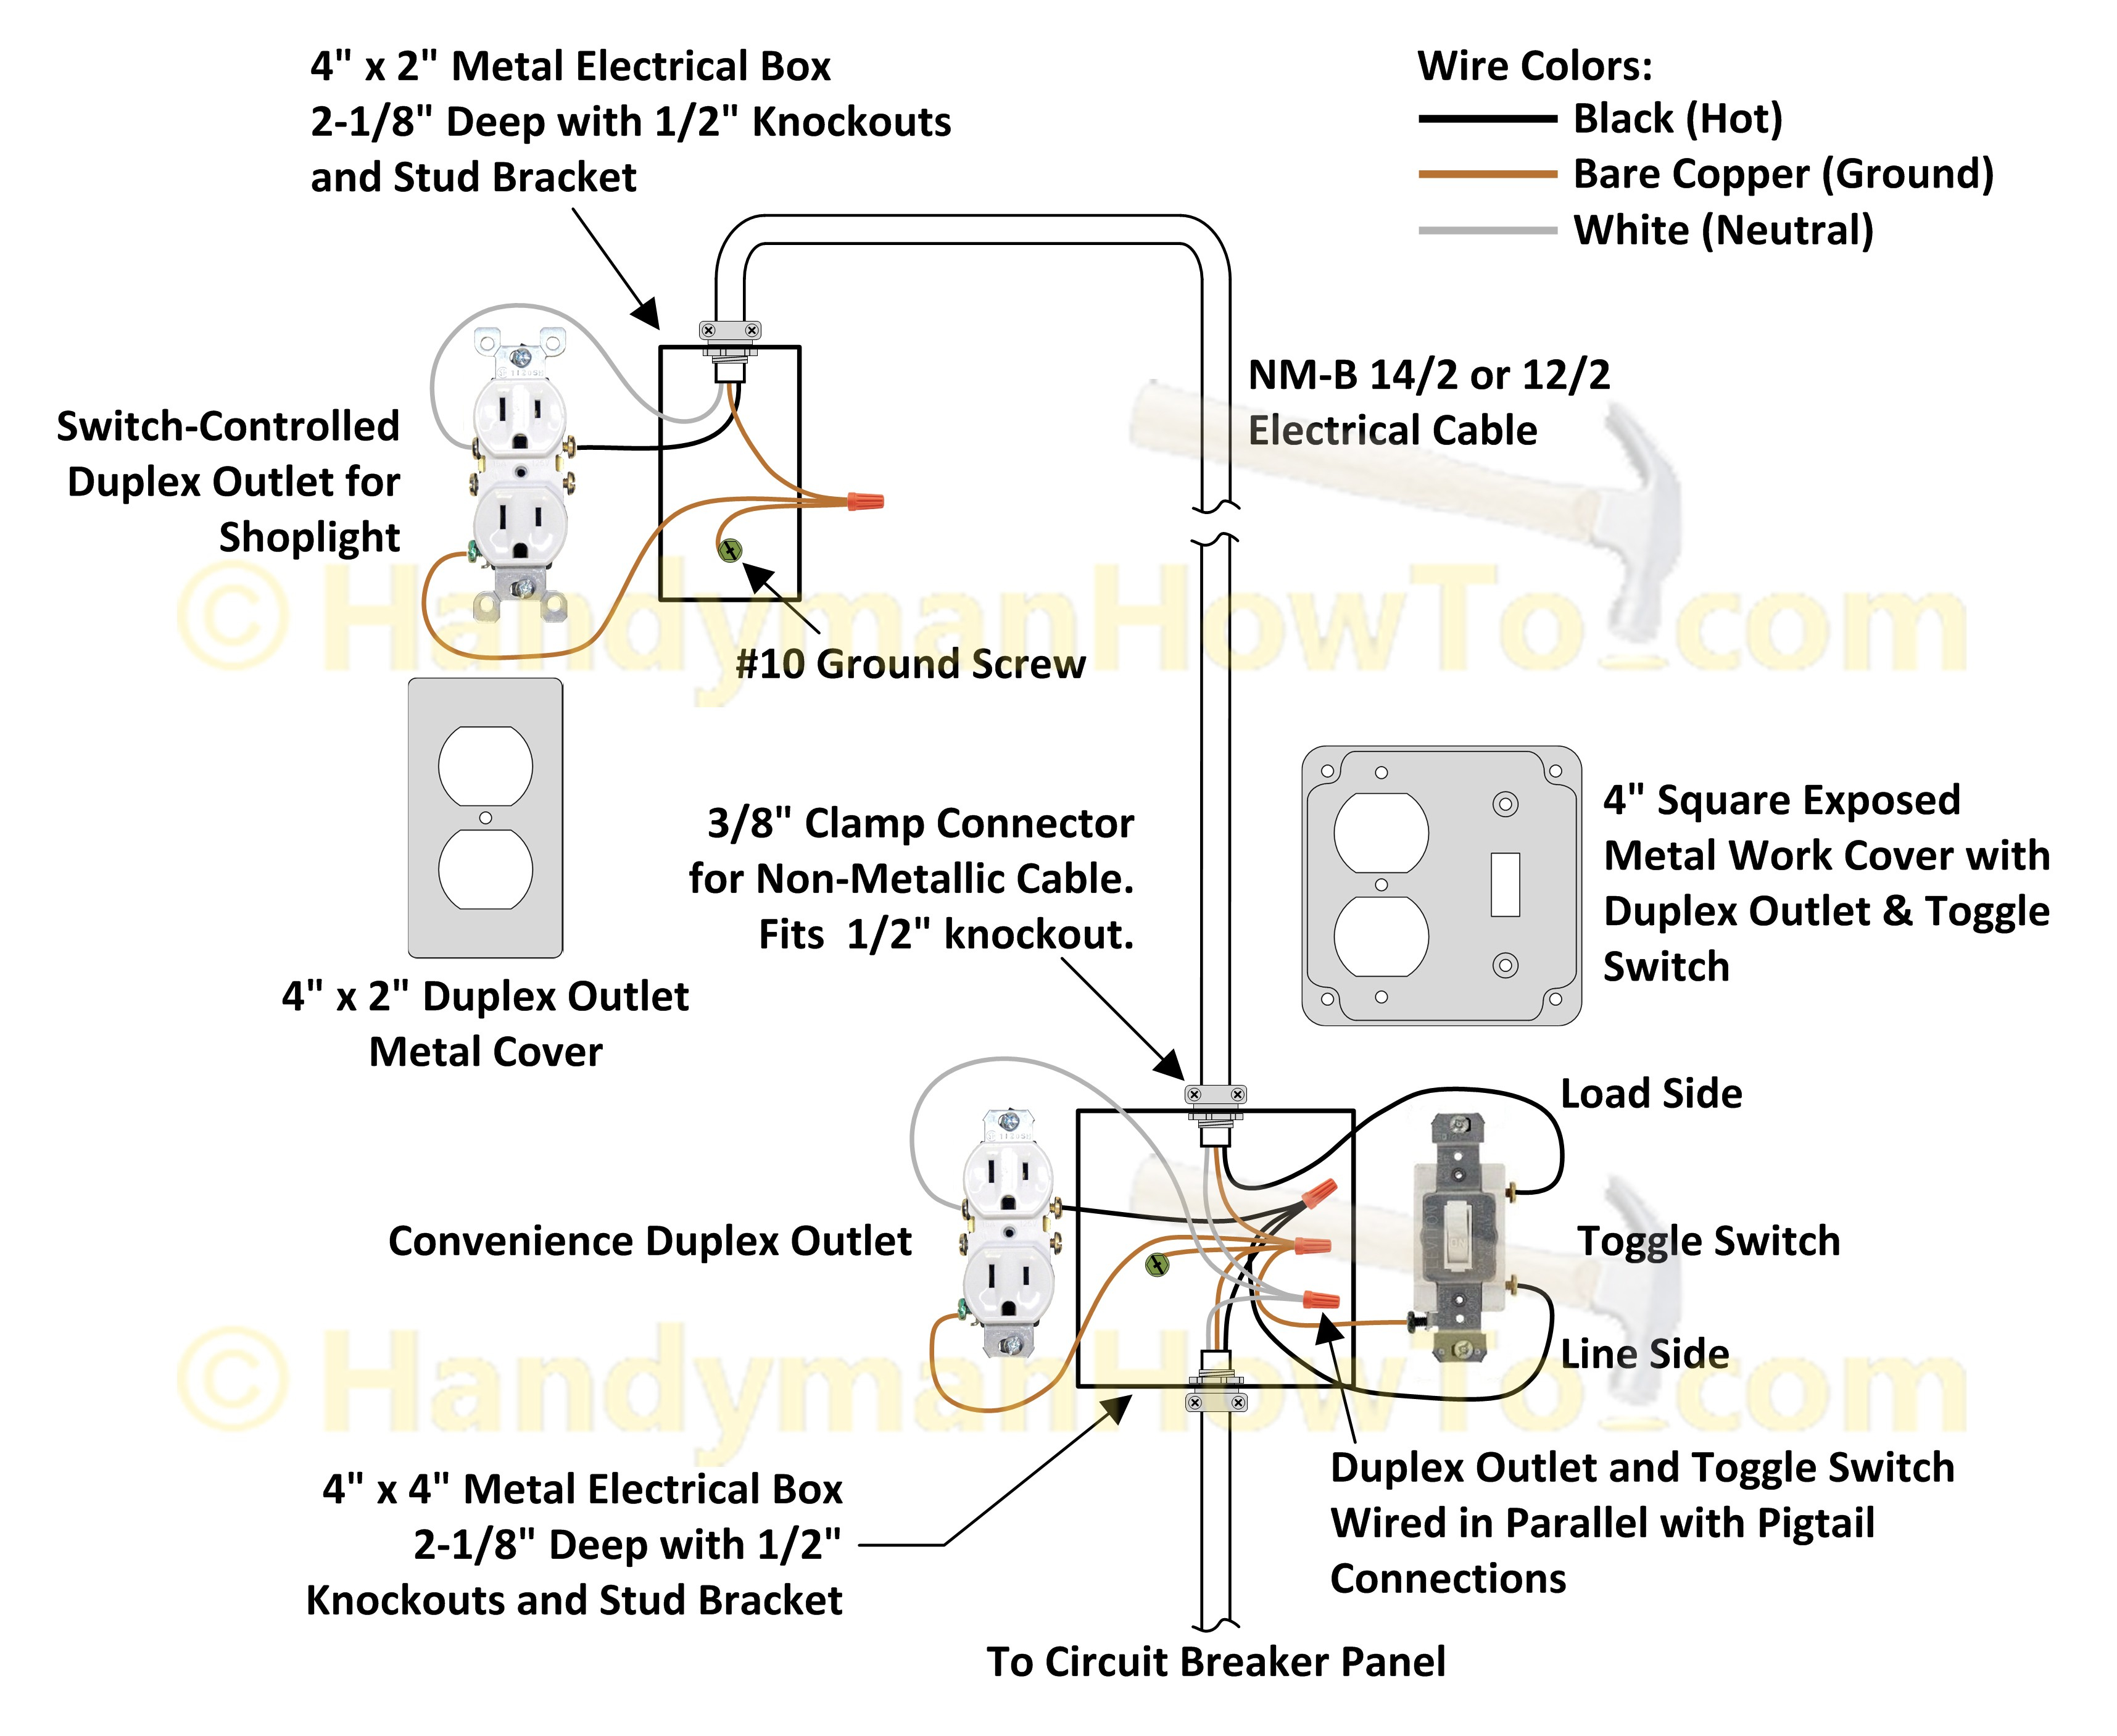 canarm exhaust fan wiring diagram Download-Wiring Diagram for Canarm Exhaust Fan New New How to Wire A Light Switch Diagram 87 14-l